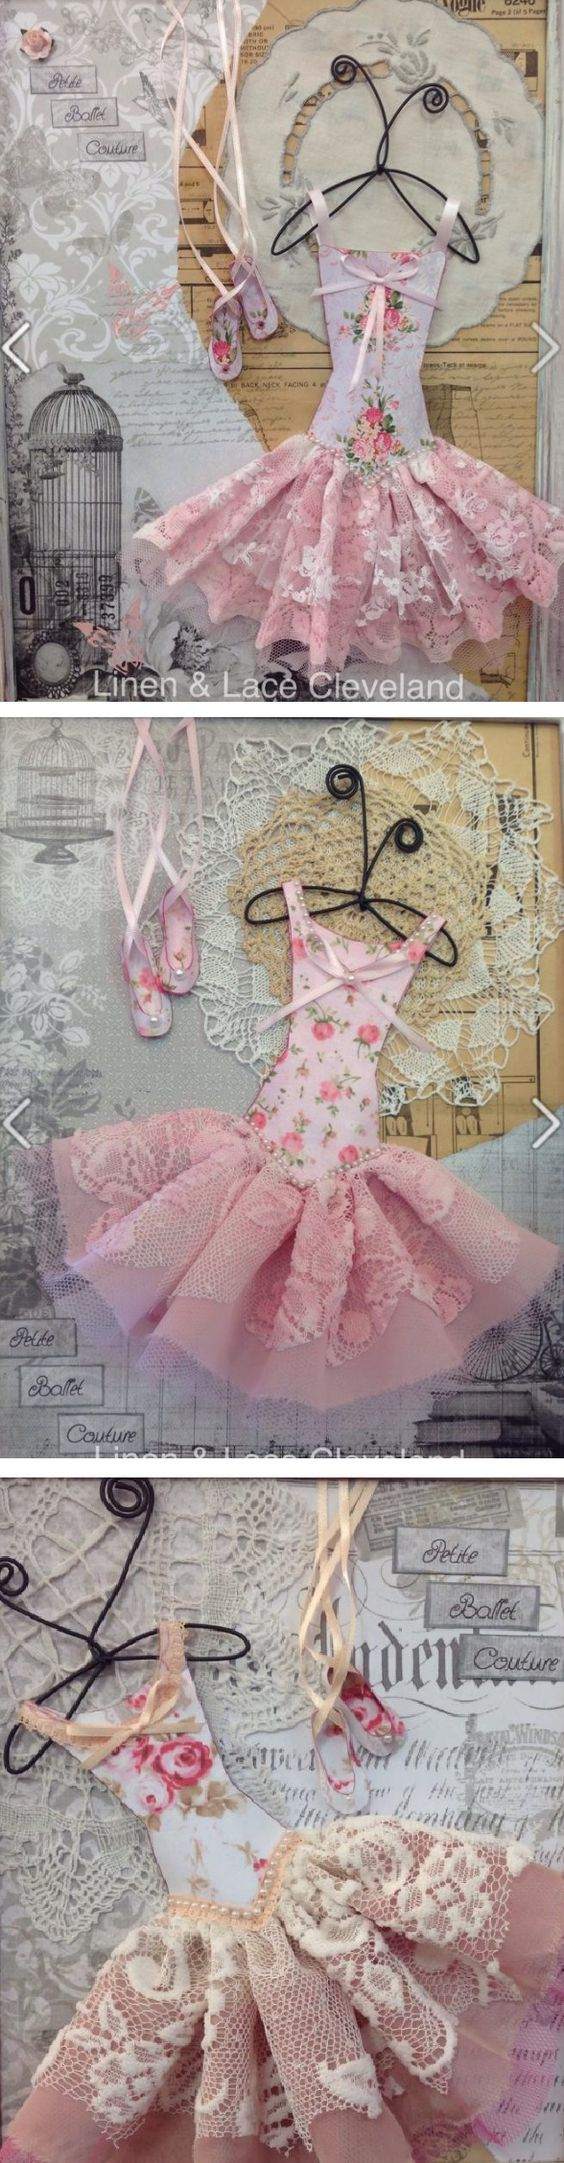 Idea for wall art or something fun to do :) Love the paper and lace ballerina dress and paper shoes! :D